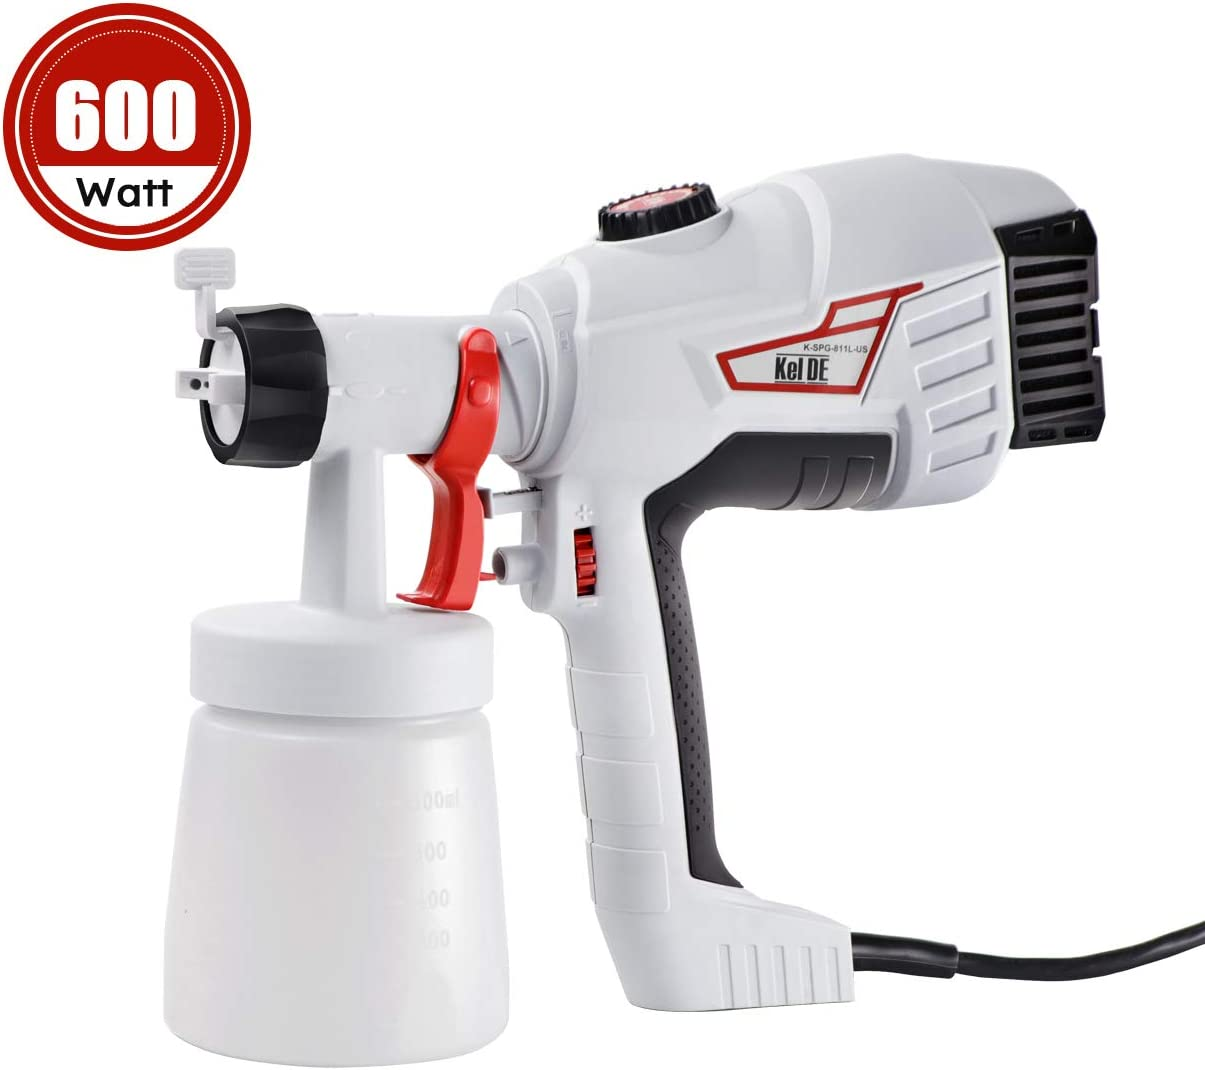 KeLDE 600W High Power Paint Sprayer, 900ml min HVLP Home Electric Spray Gun with 3 Spray Patterns for Fence, Cabinet and Furniture